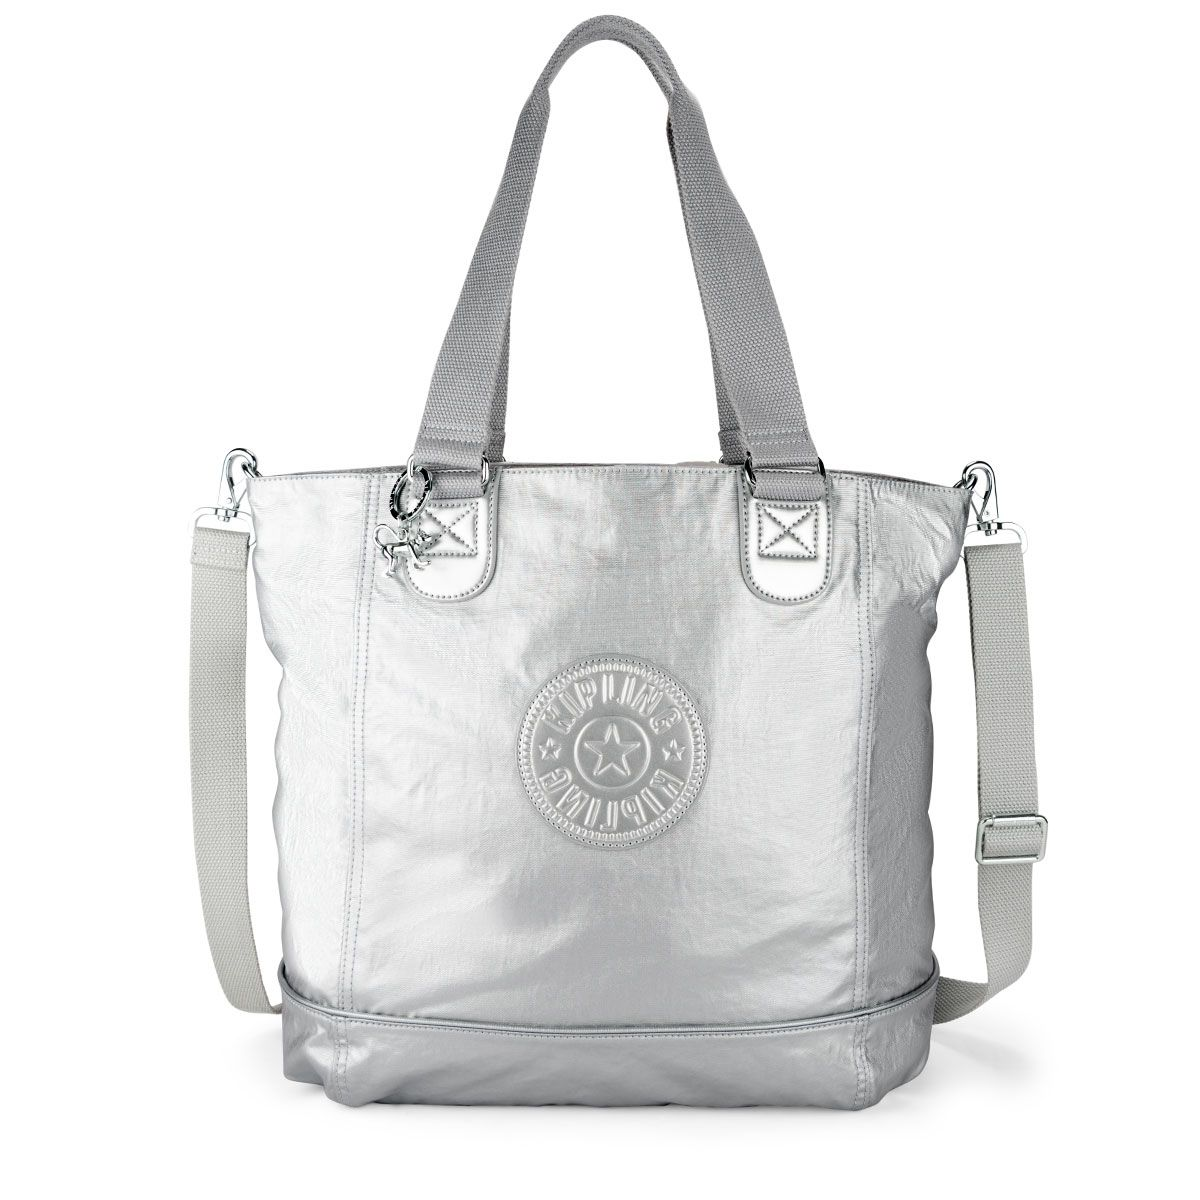 Kipling Handbags, Purses   Accessories - Macy s 20adc29ff6